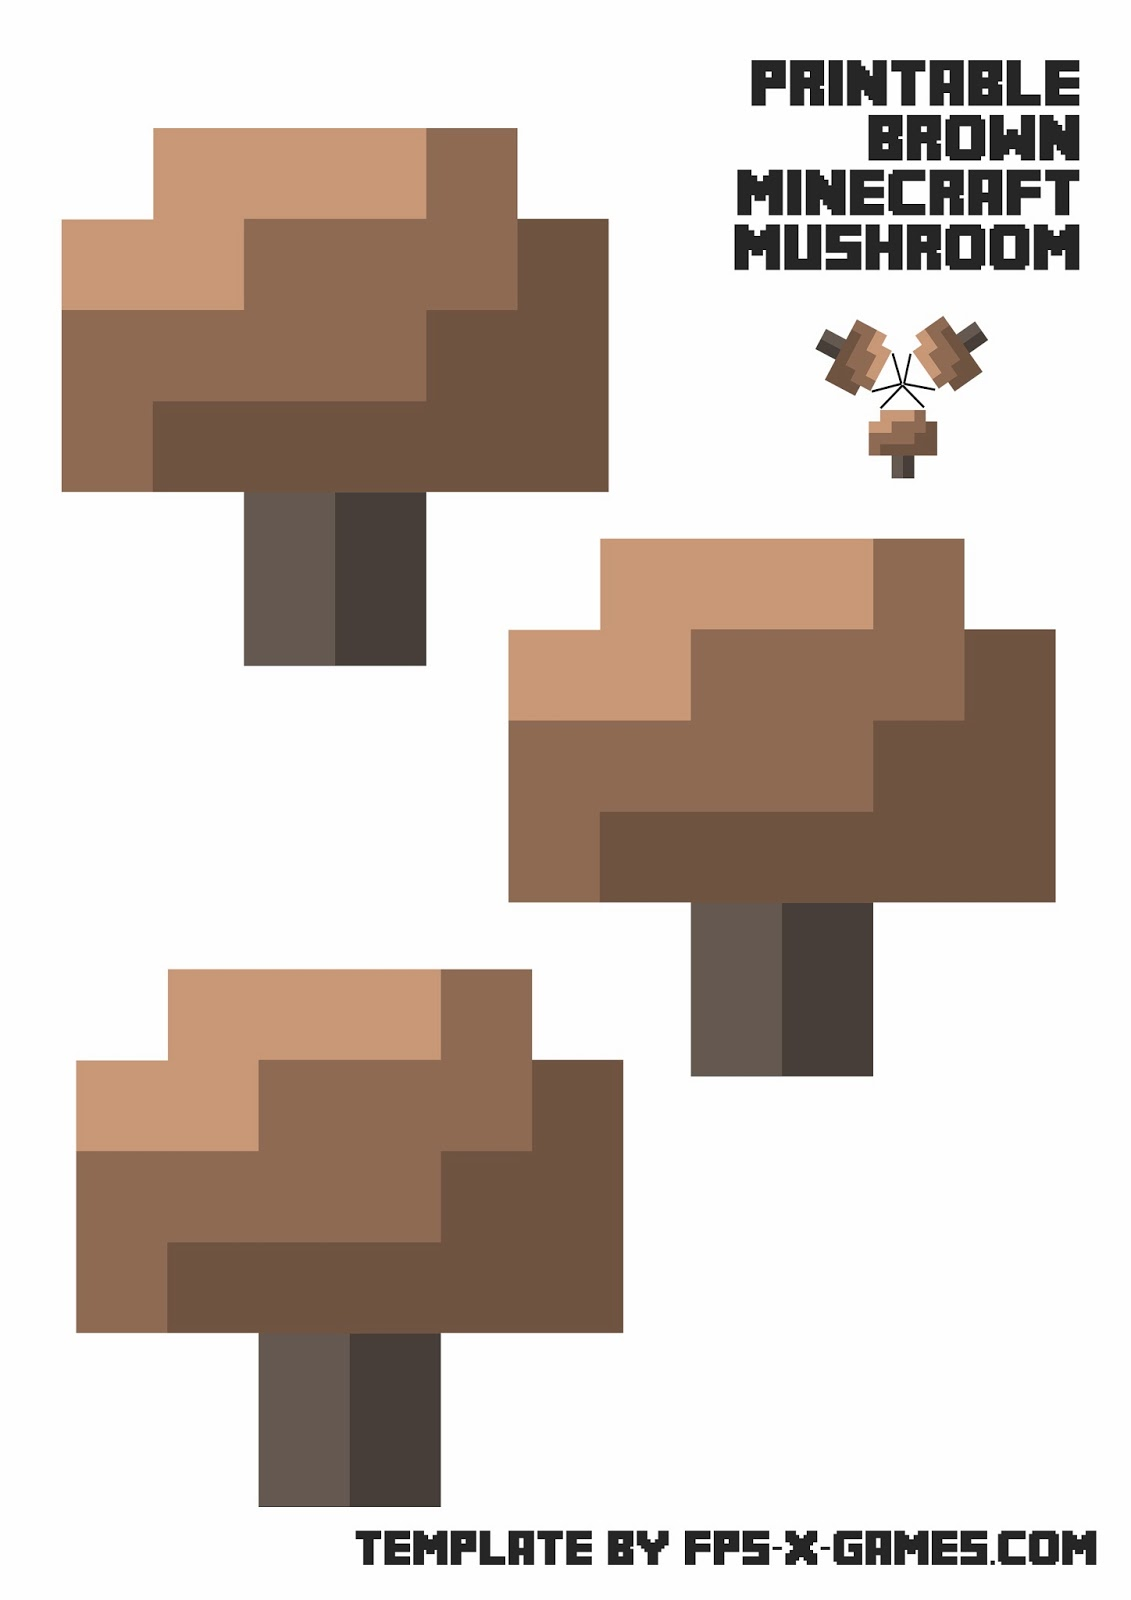 Printable papercraft template minecraft mushroom